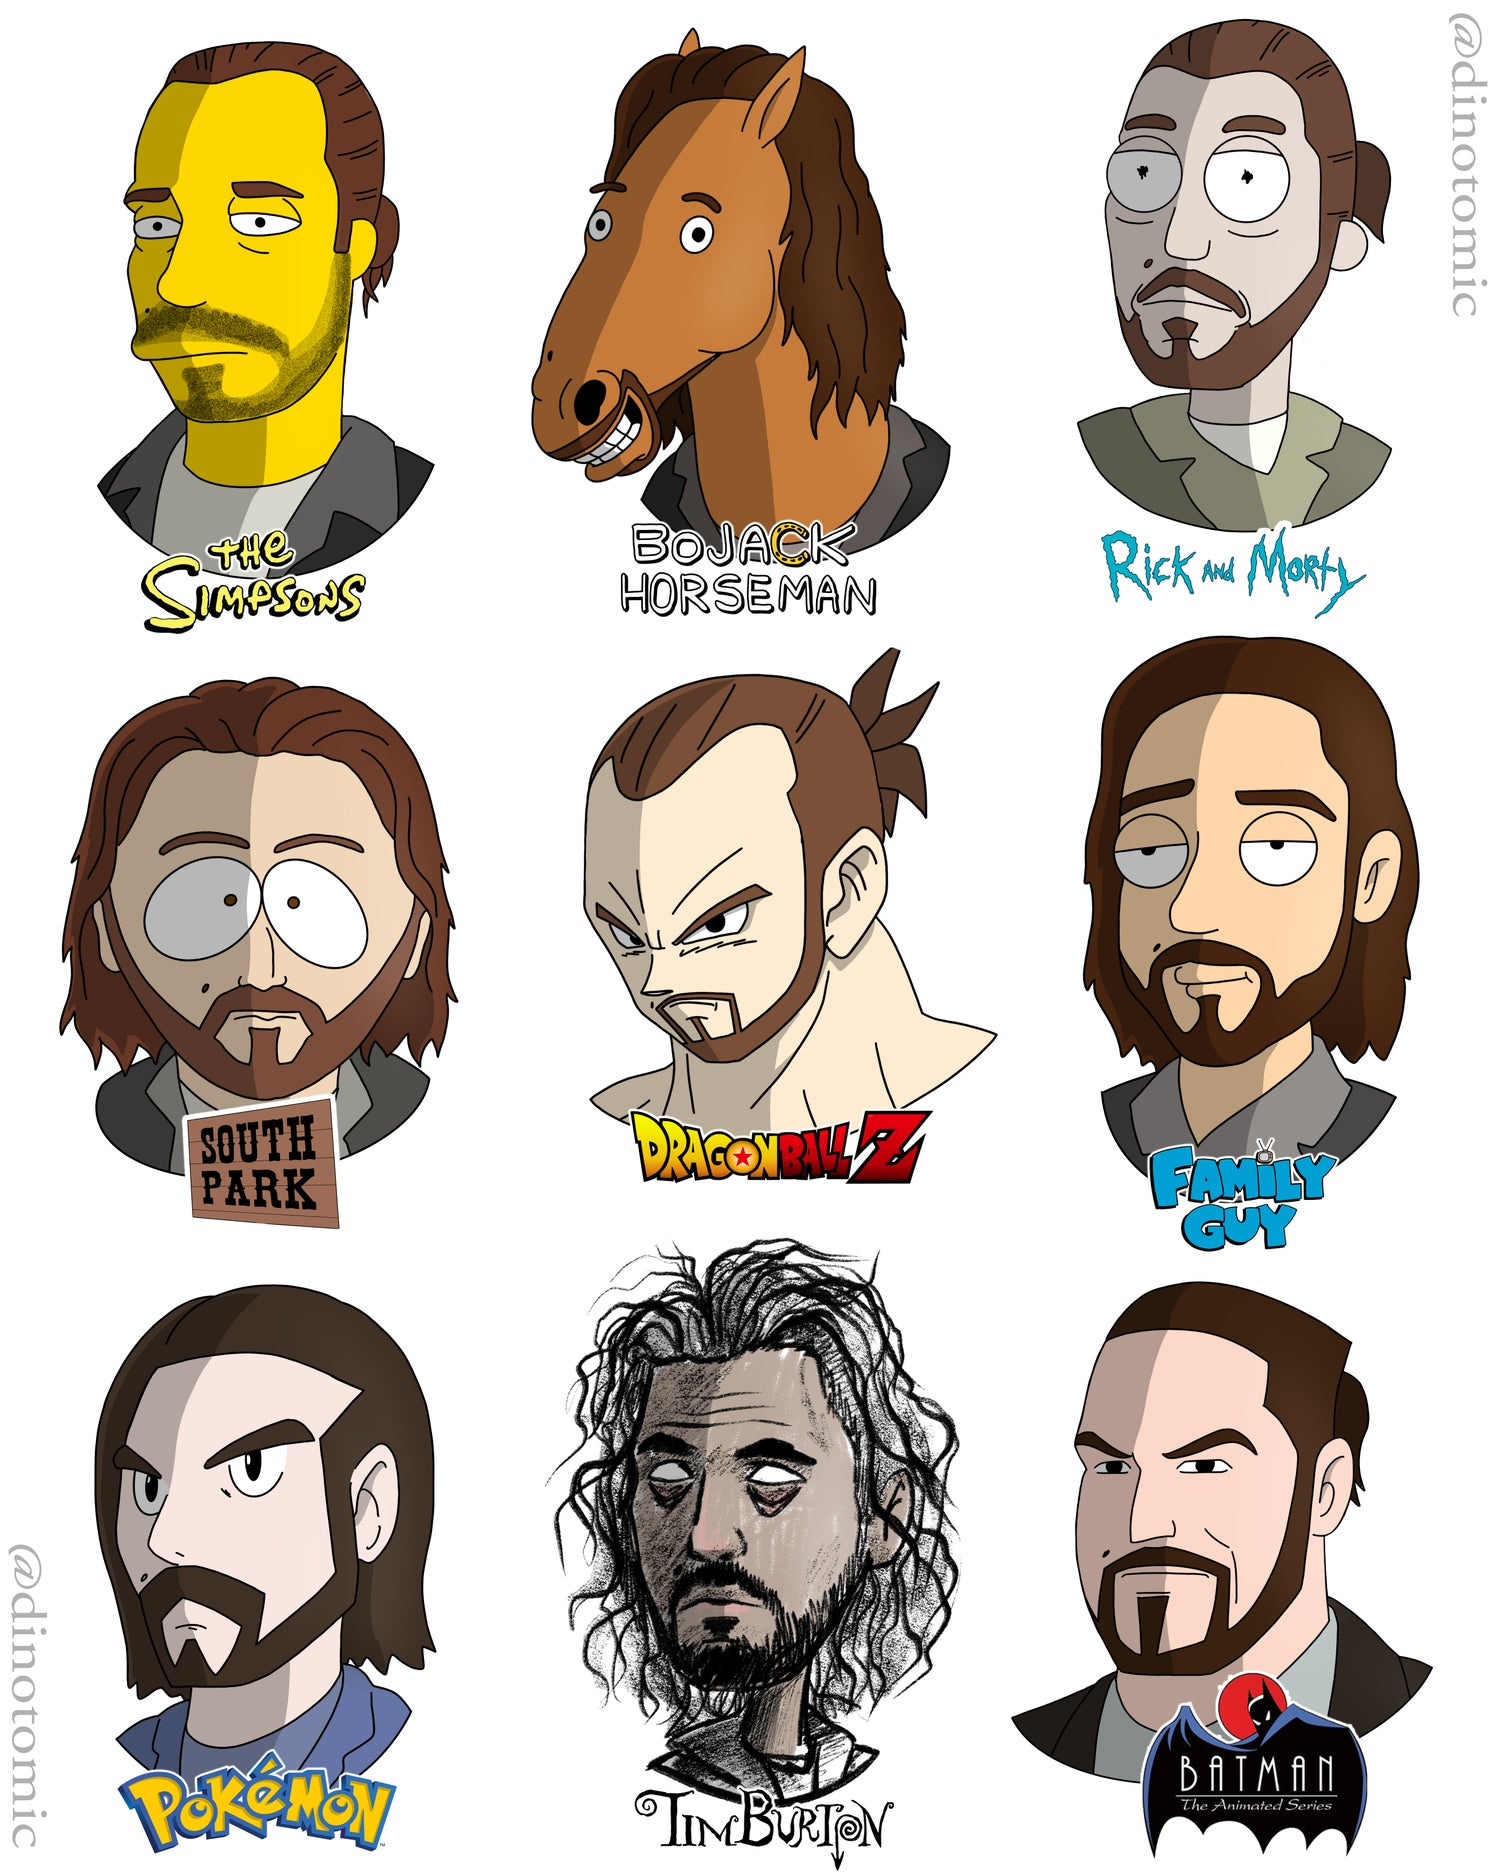 Image of #198 Dimitri Vegas in many styles